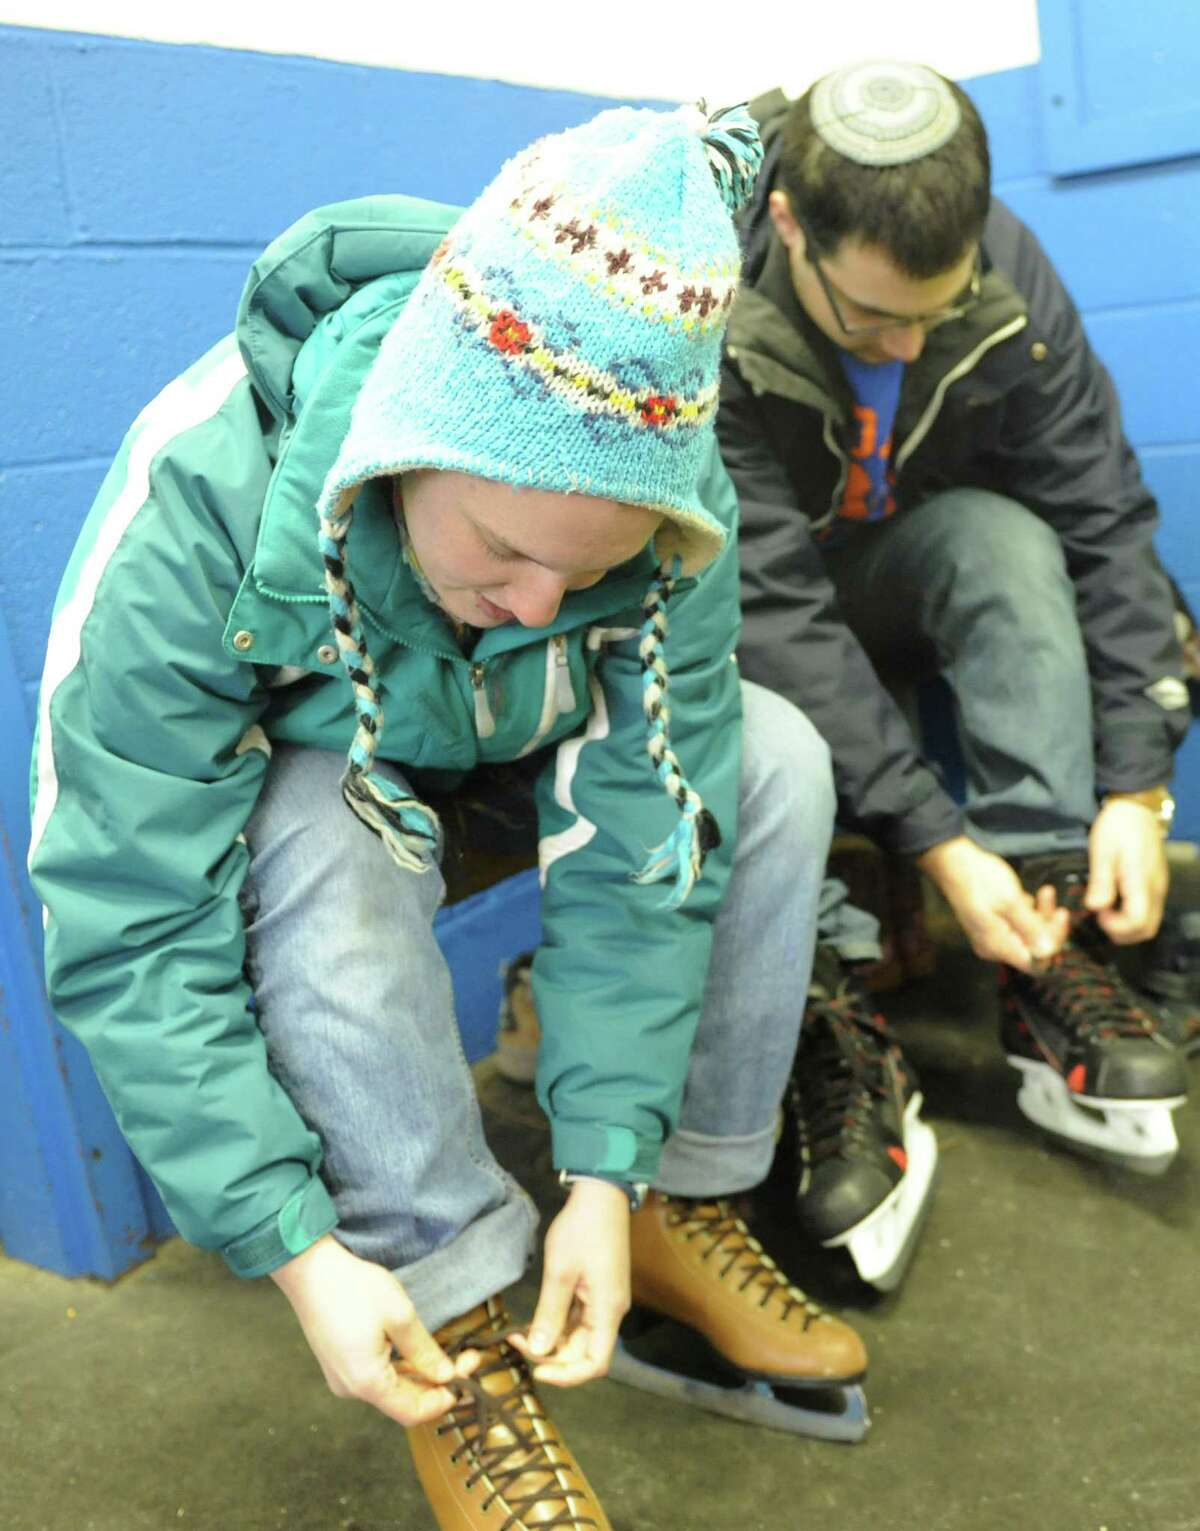 Temple Sholom members Naomi Scheinerman, of New Haven, and Yoni Nadiv, of New York, put on their skates at the Dorothy Hamill Ice Rink in Greenwich, Conn. Sunday, Jan. 25, 2015. Temple Sholom held its annual